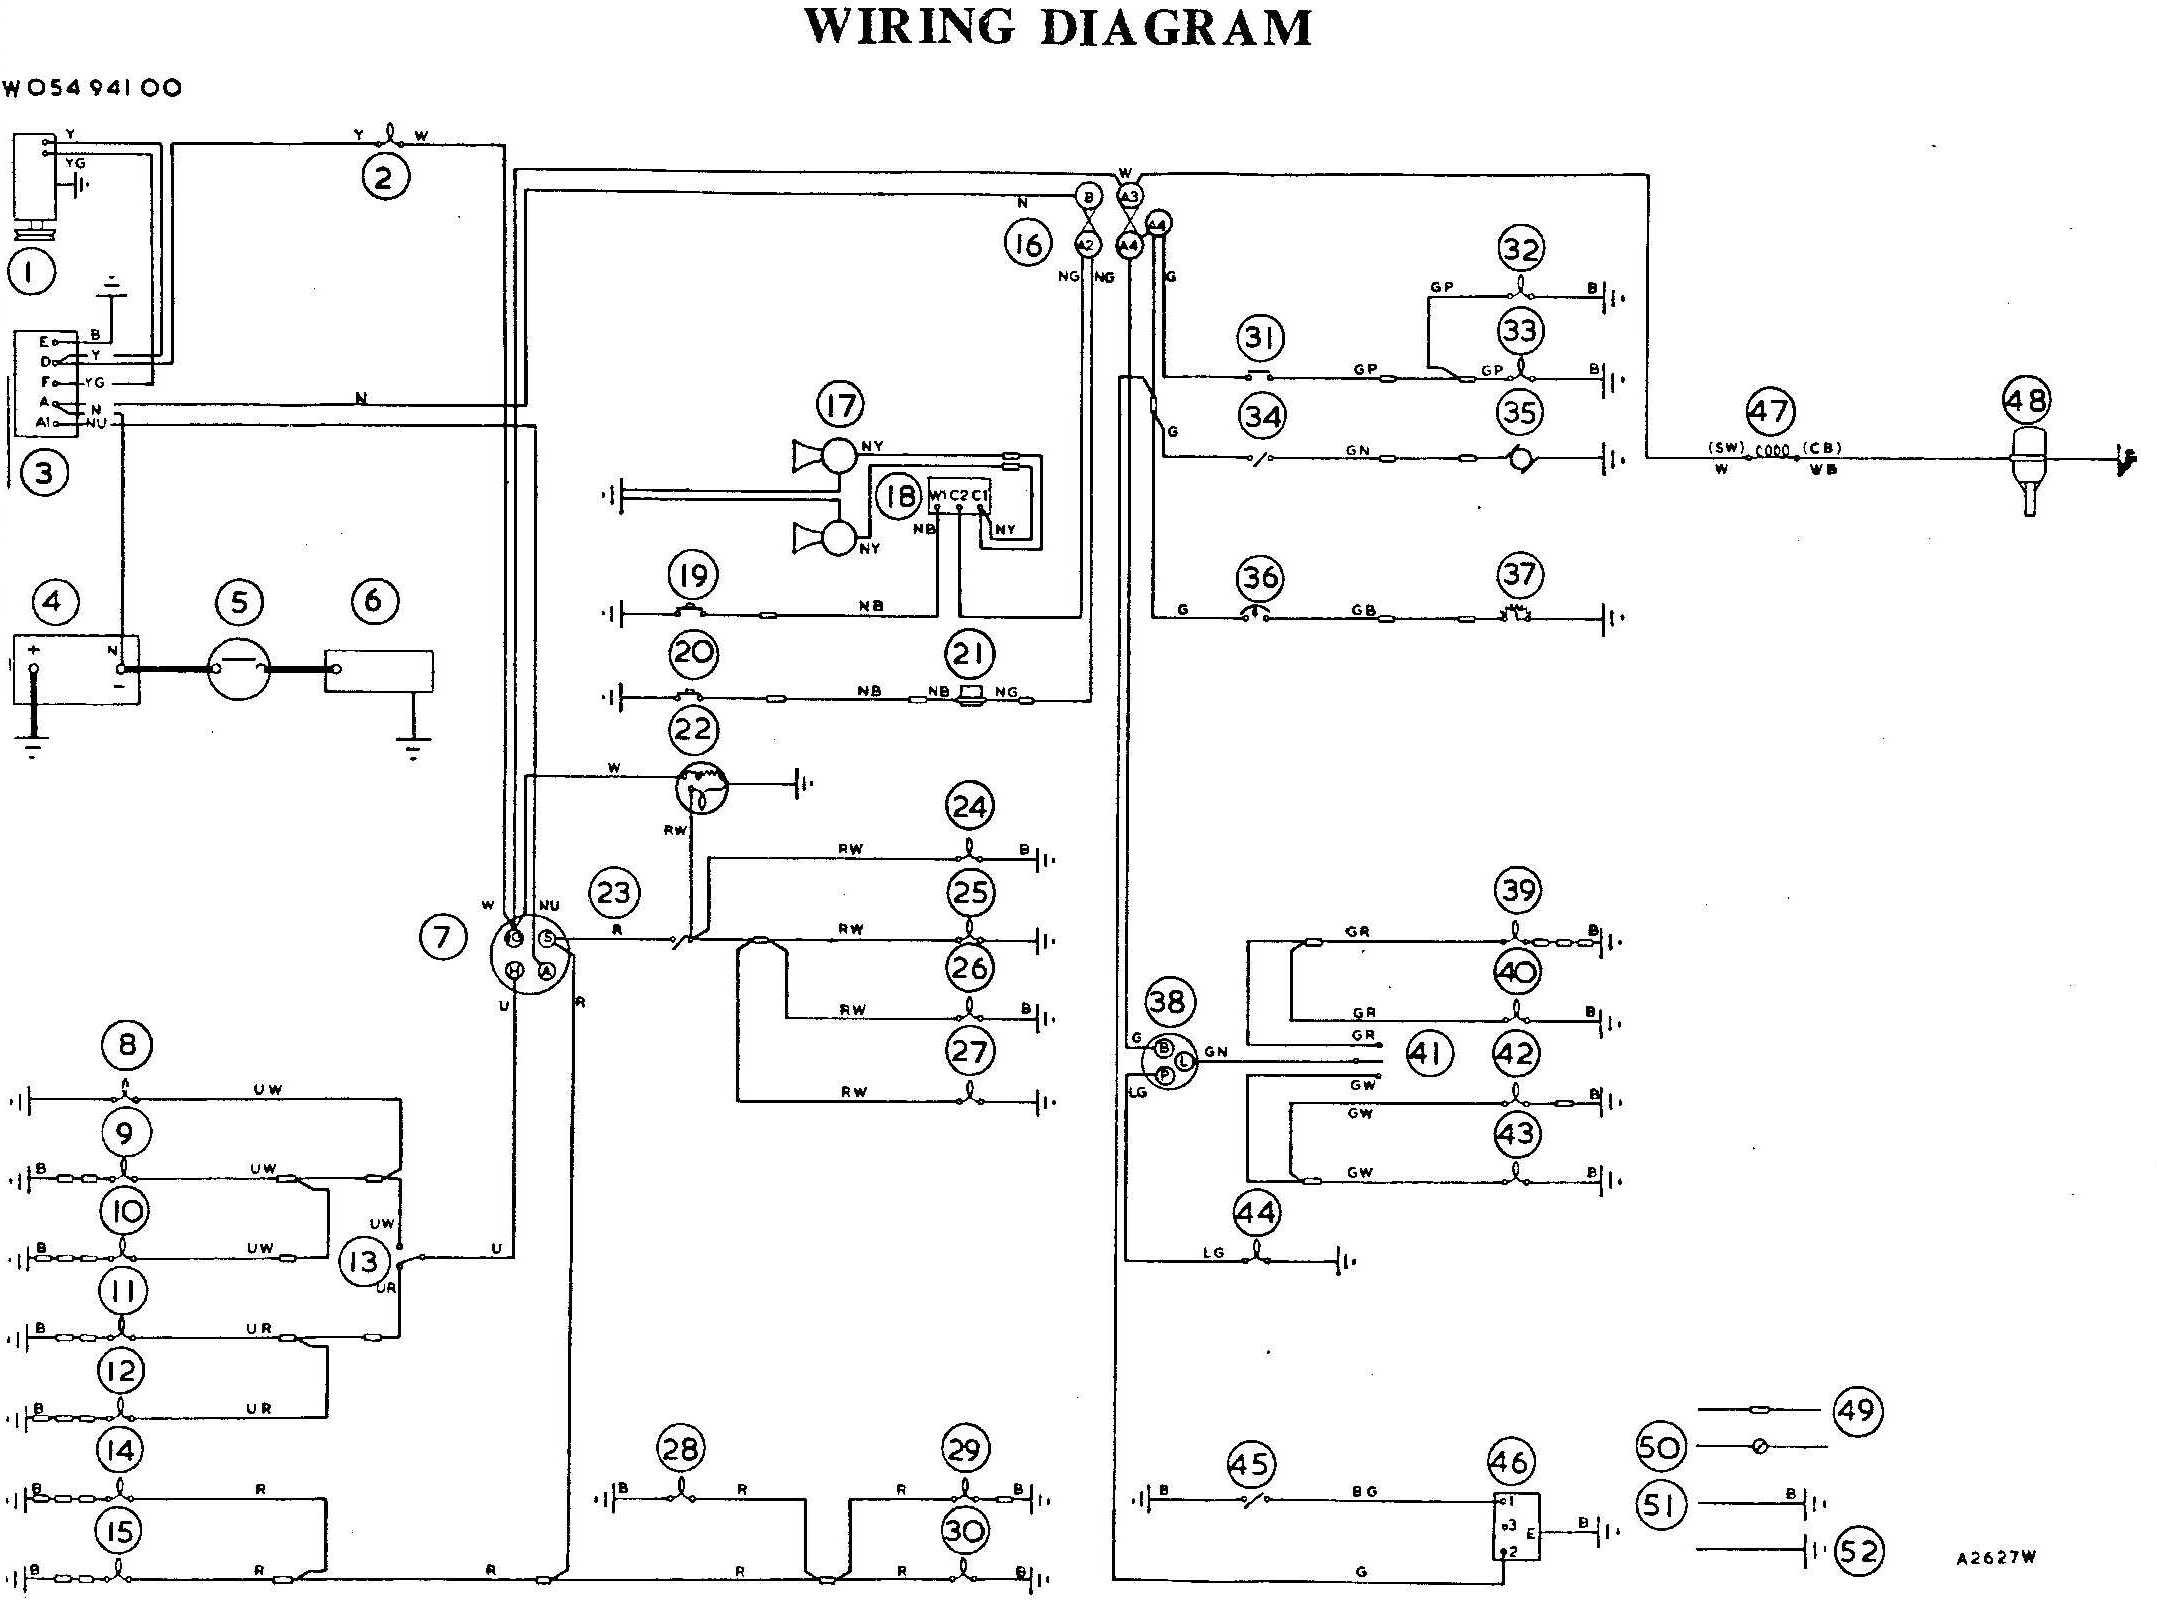 Garage Wiring Diagrams Diagram Examples For Fluorescent Lights With Carport Bugeye Uk